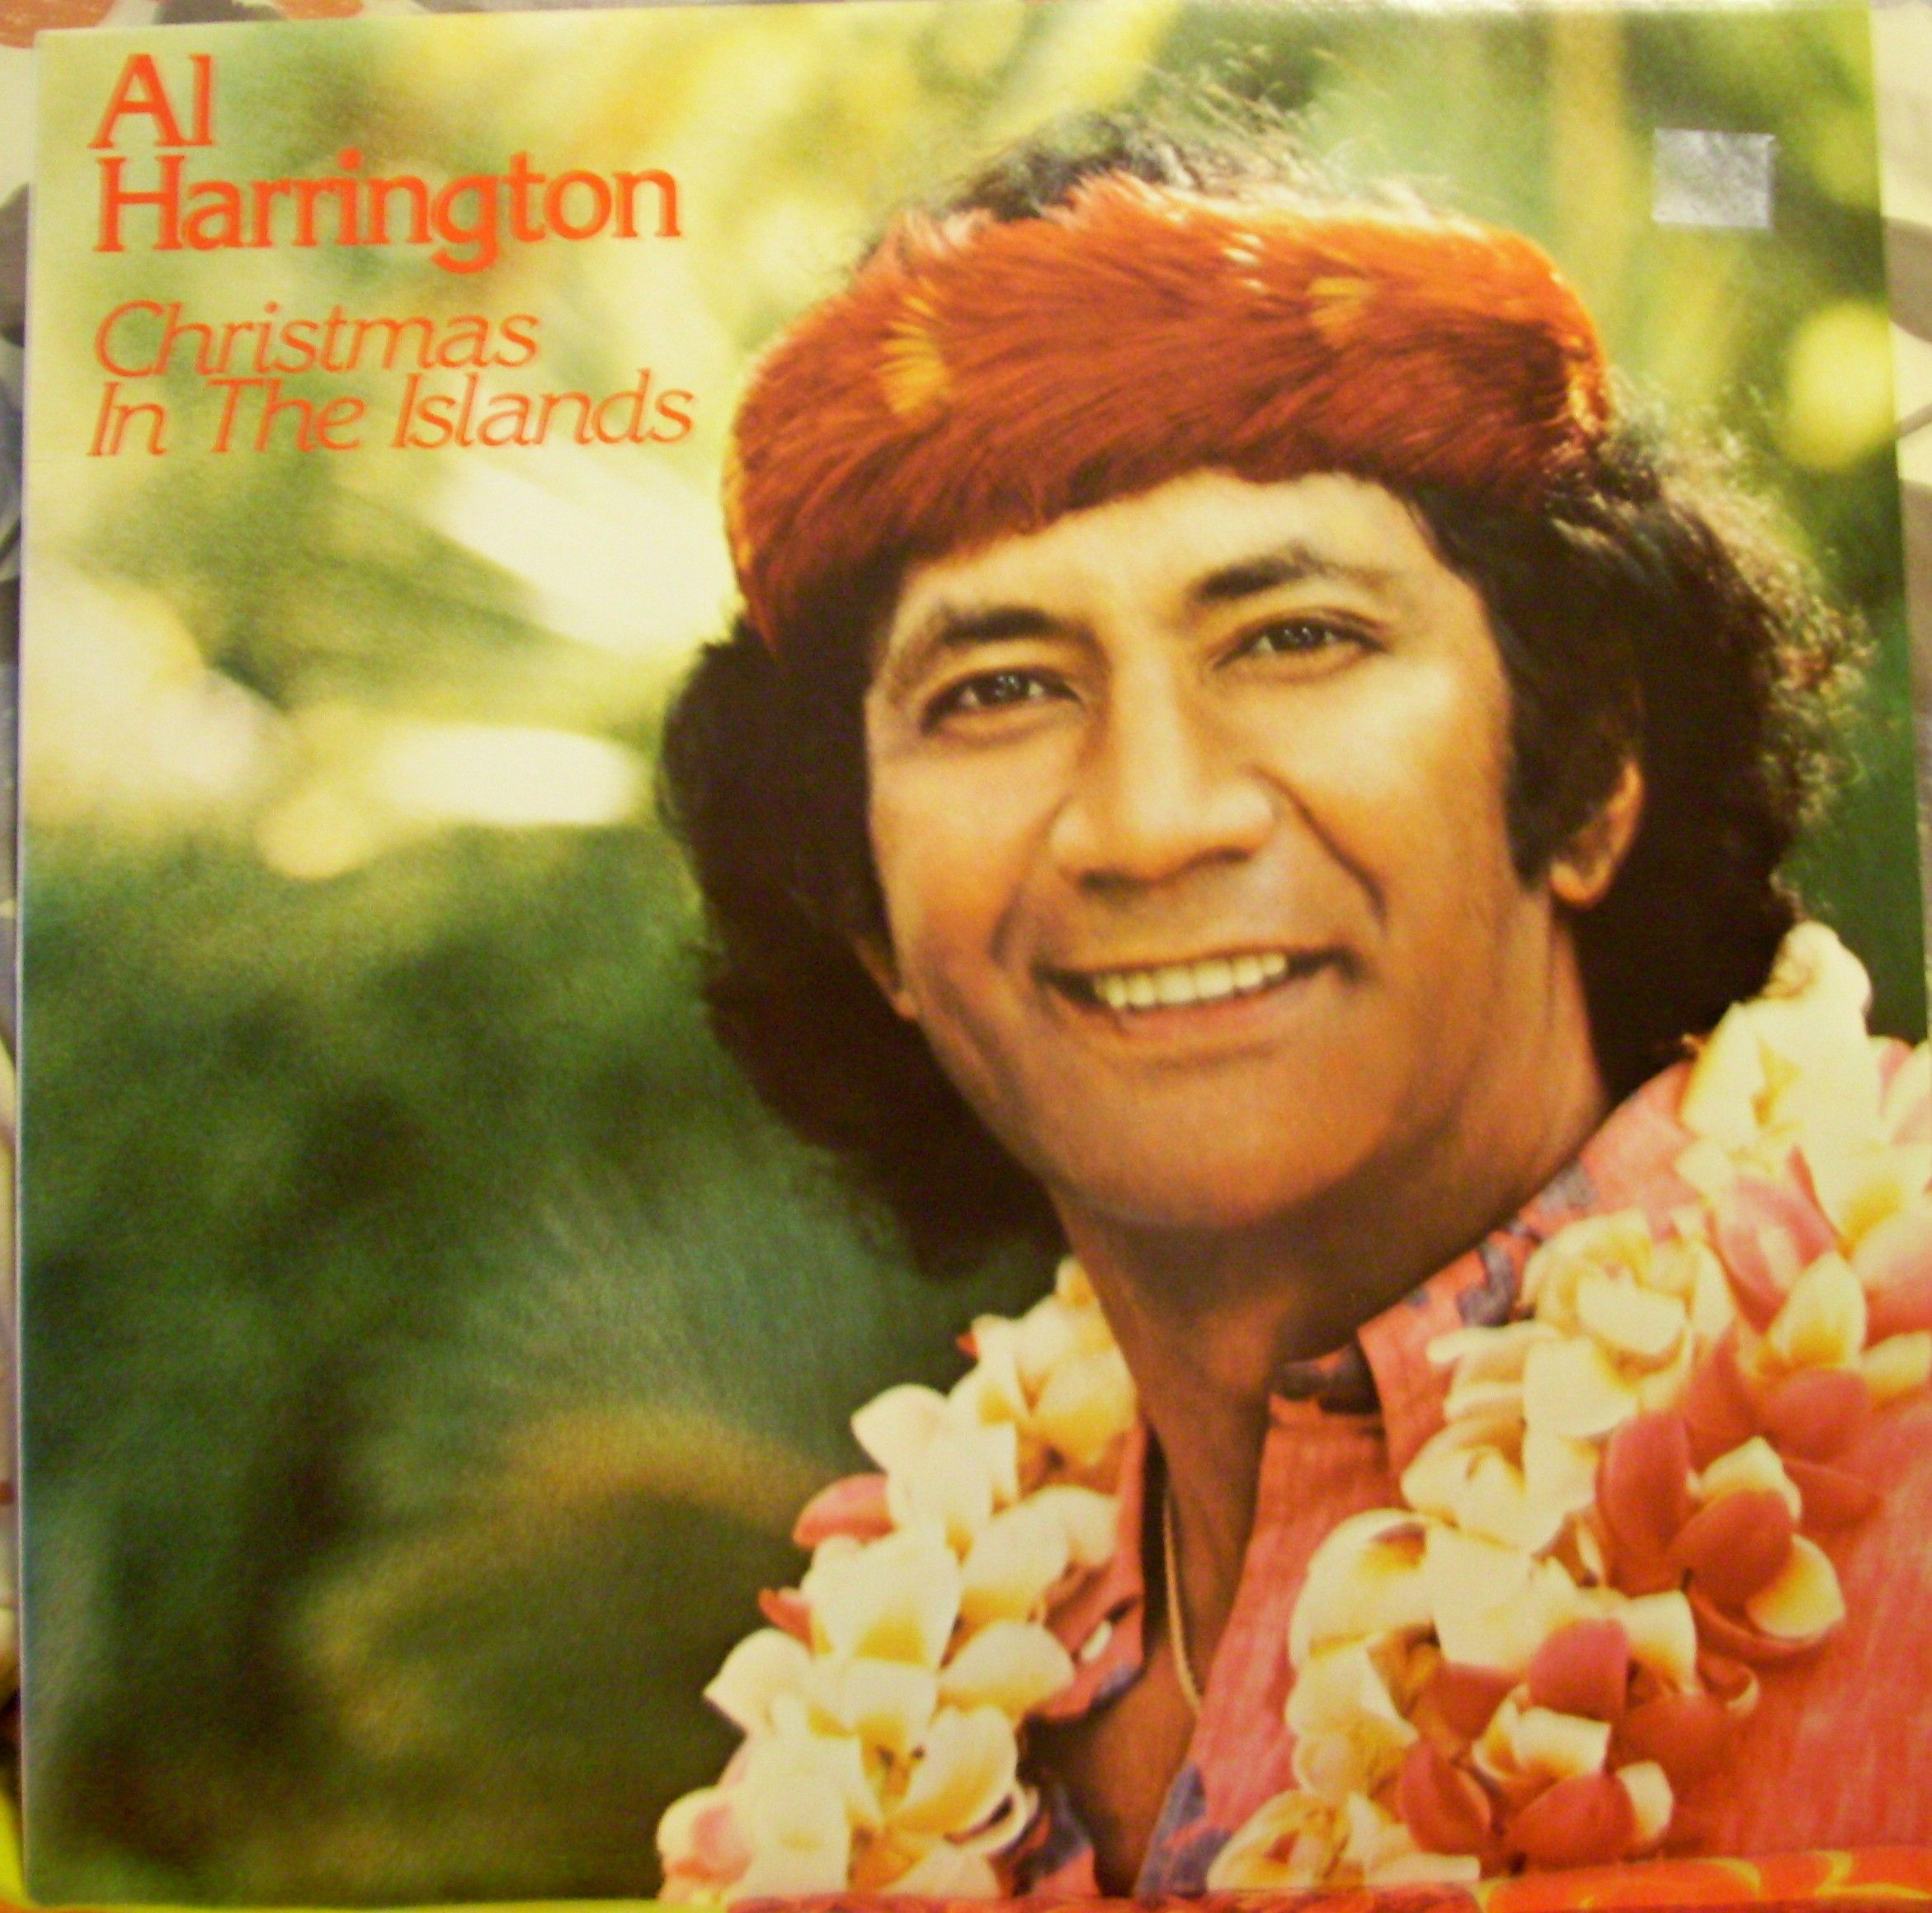 Christmas In Hawaii Movie.Christmas In The Islands By Al Harrington South Pacific Man